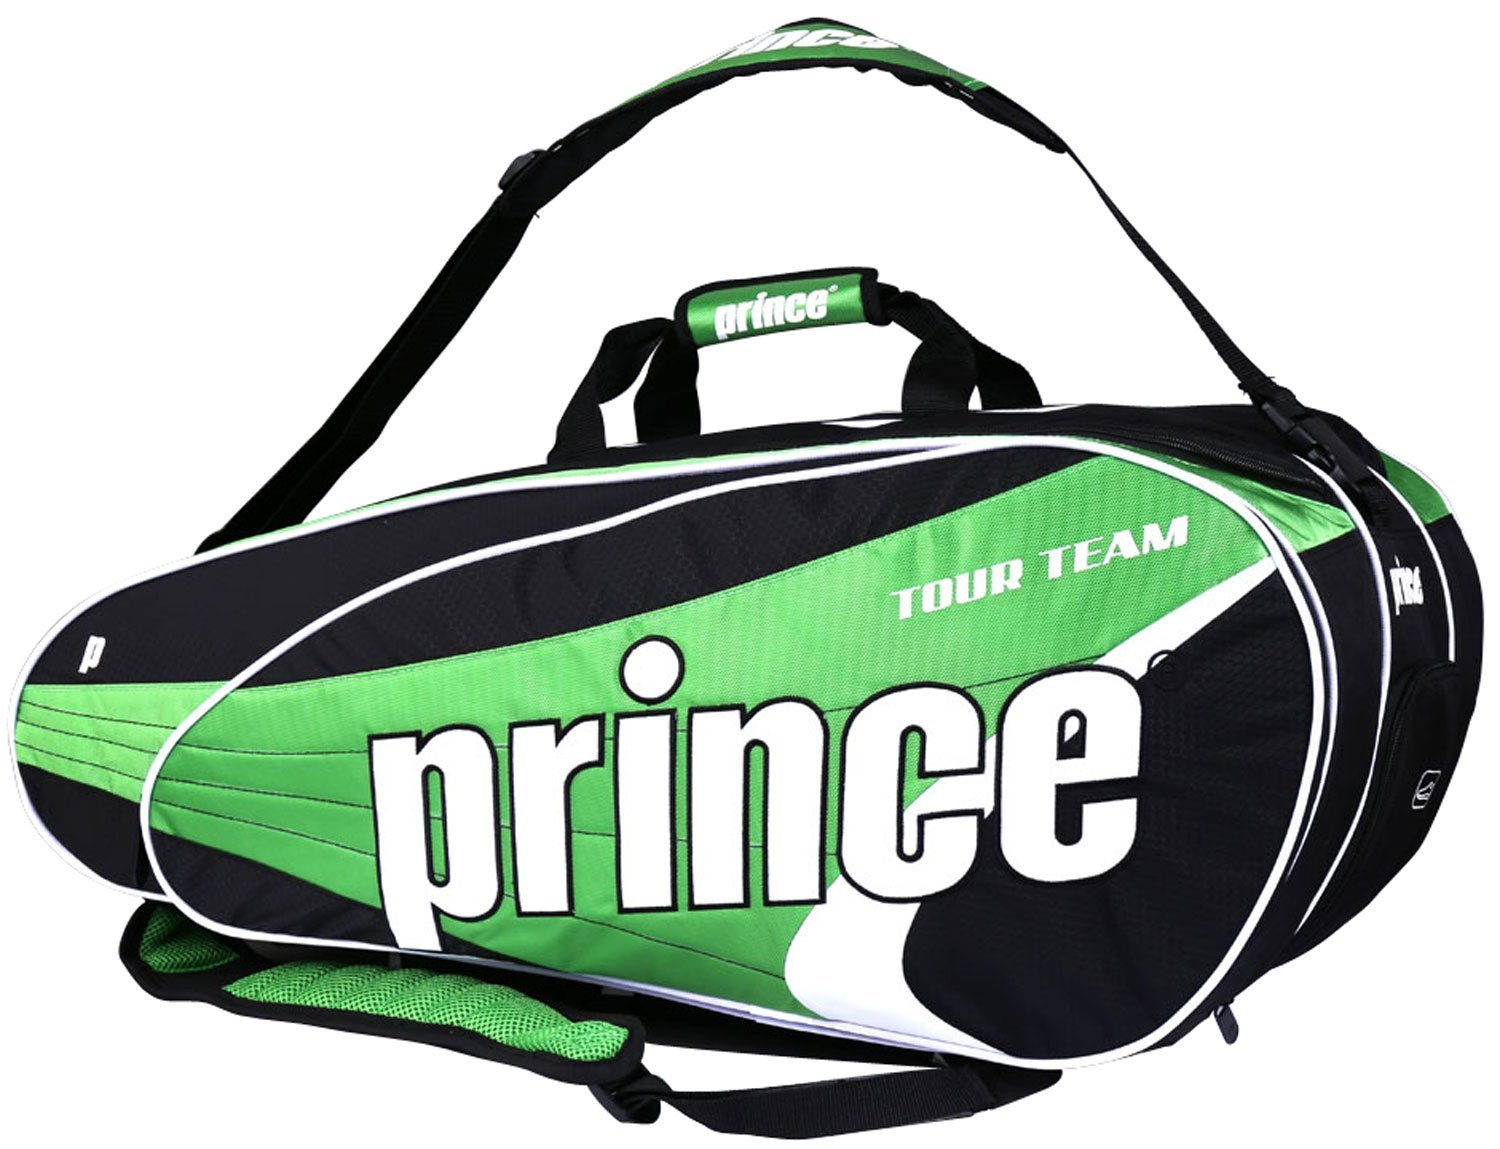 Prince Tour Team 12 Pack (Green)